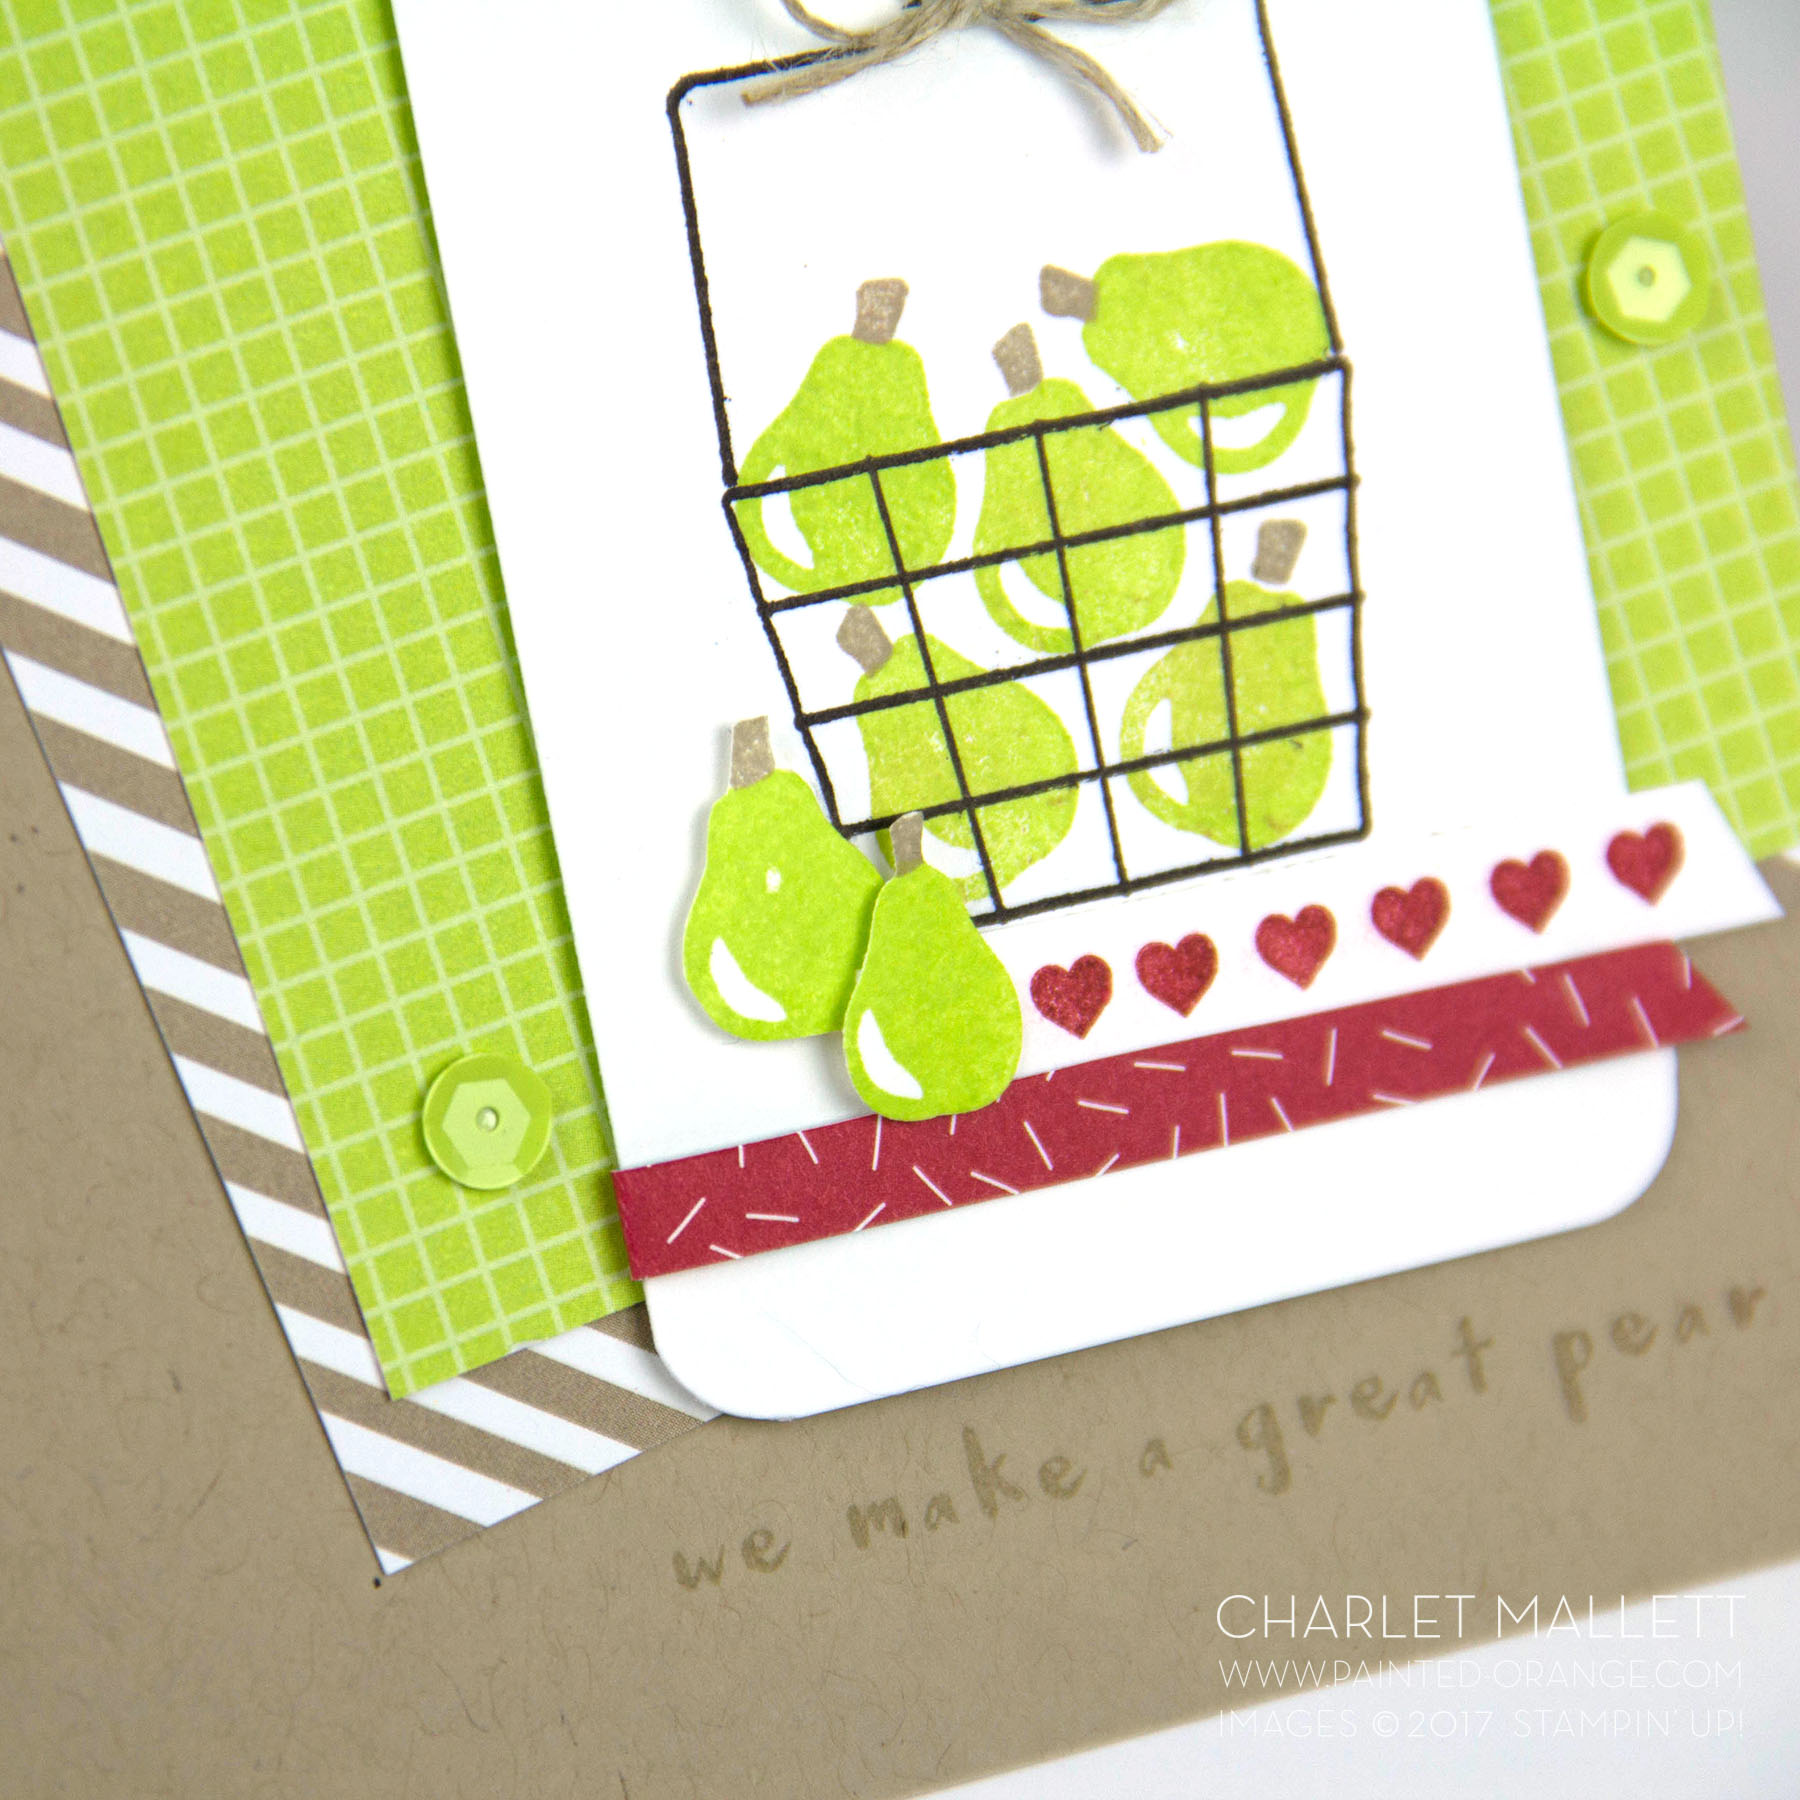 Self Adhesive sequins! Fruit Basket card - Charlet Mallett - Stampin' Up! Fruit Basket card - Charlet Mallett - Stampin' Up!